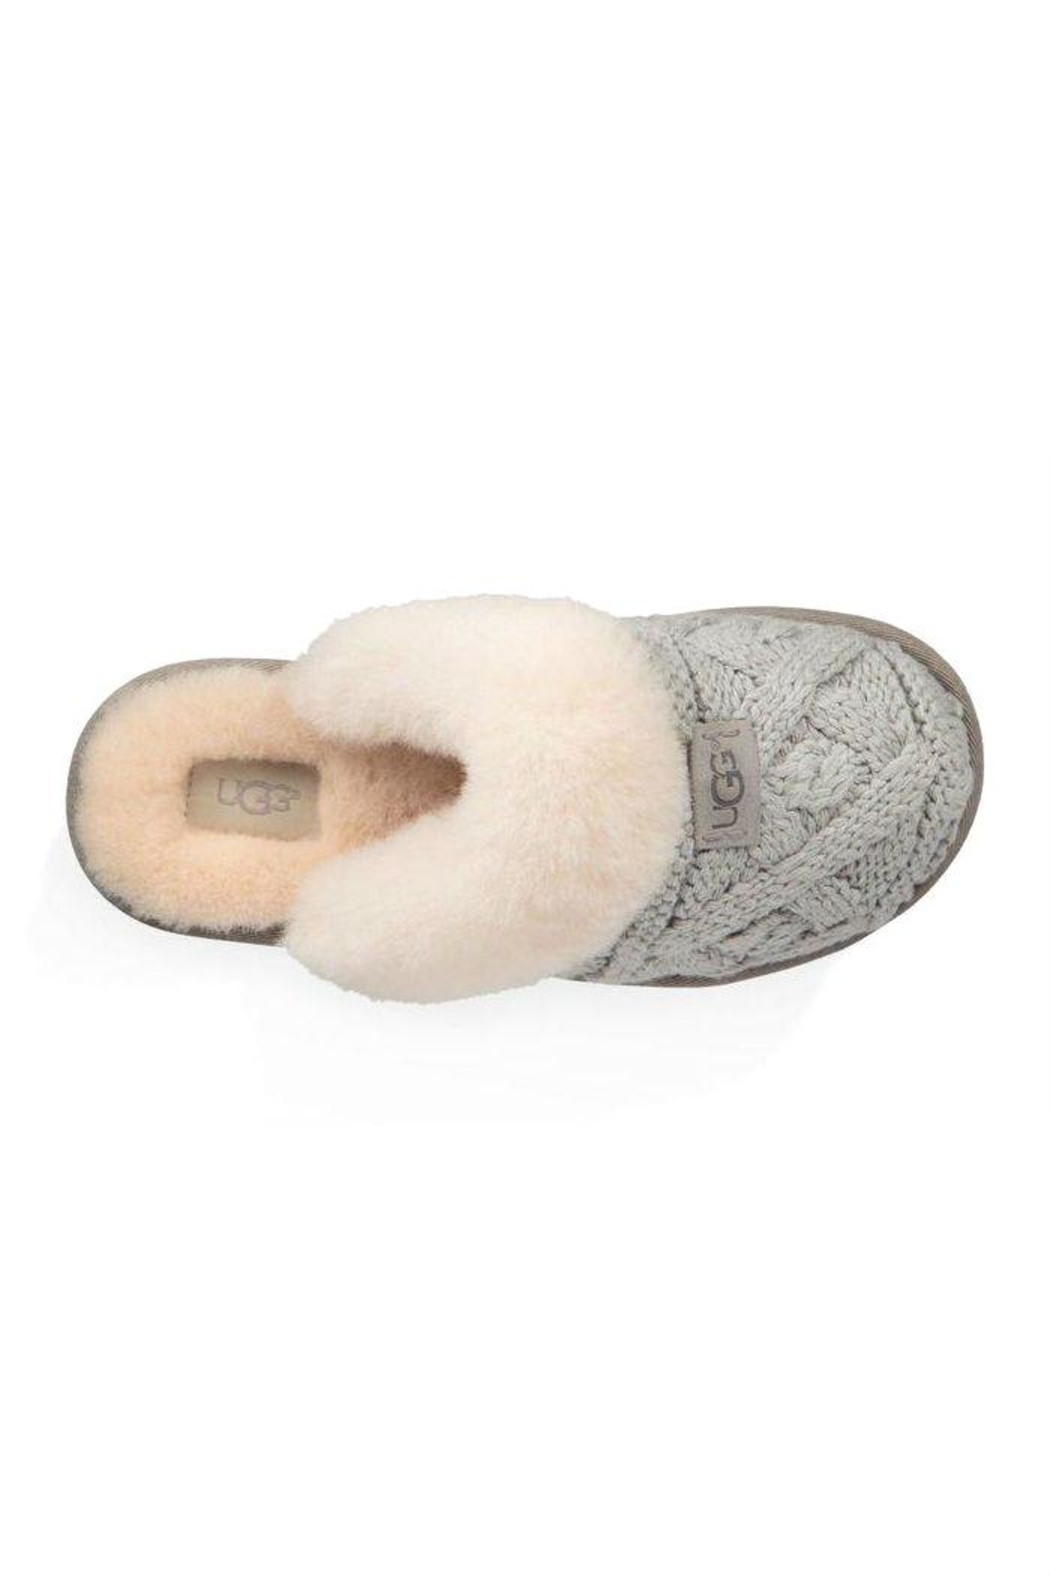 Ugg Australia Women S Cozy Knit Heart Slippers Famous Slipper 2018